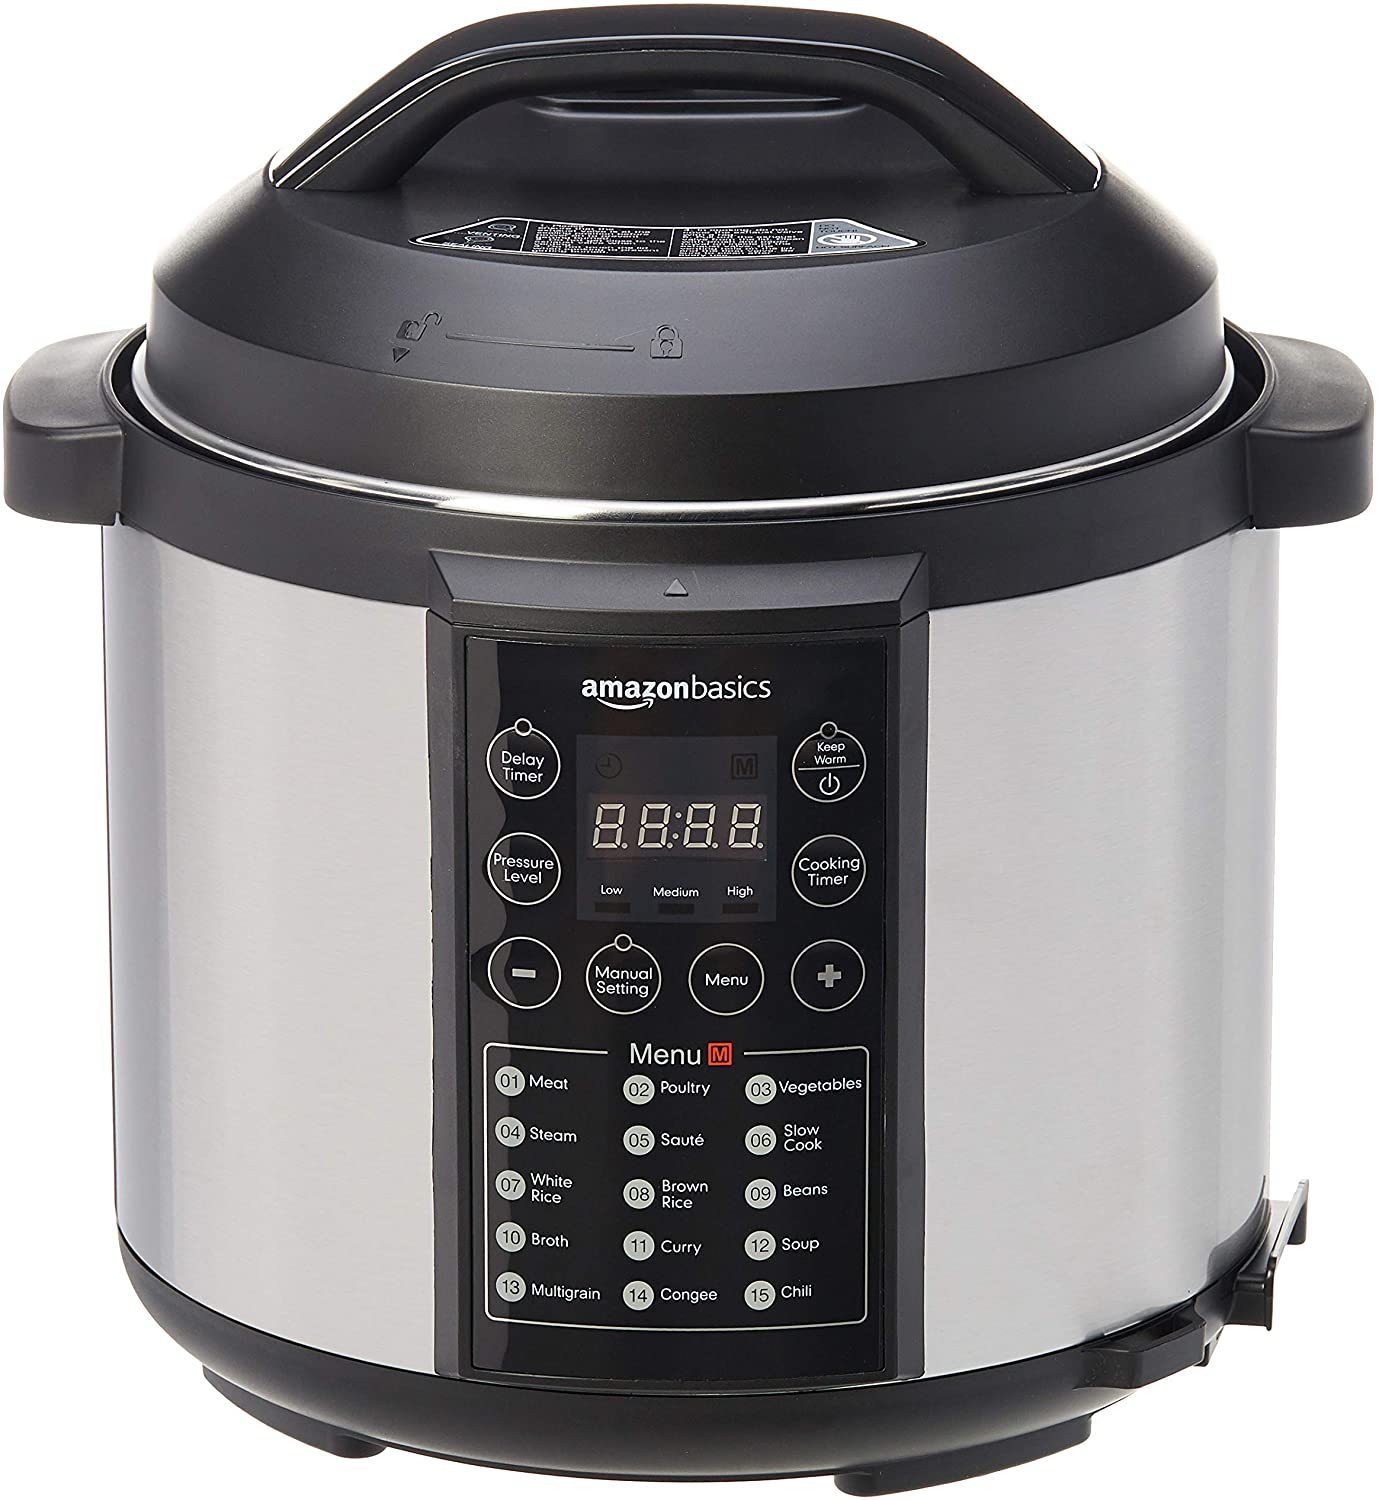 Amazon Basics Electric Pressure Cooker, 6.0 L - 1000 W - Outlet Product